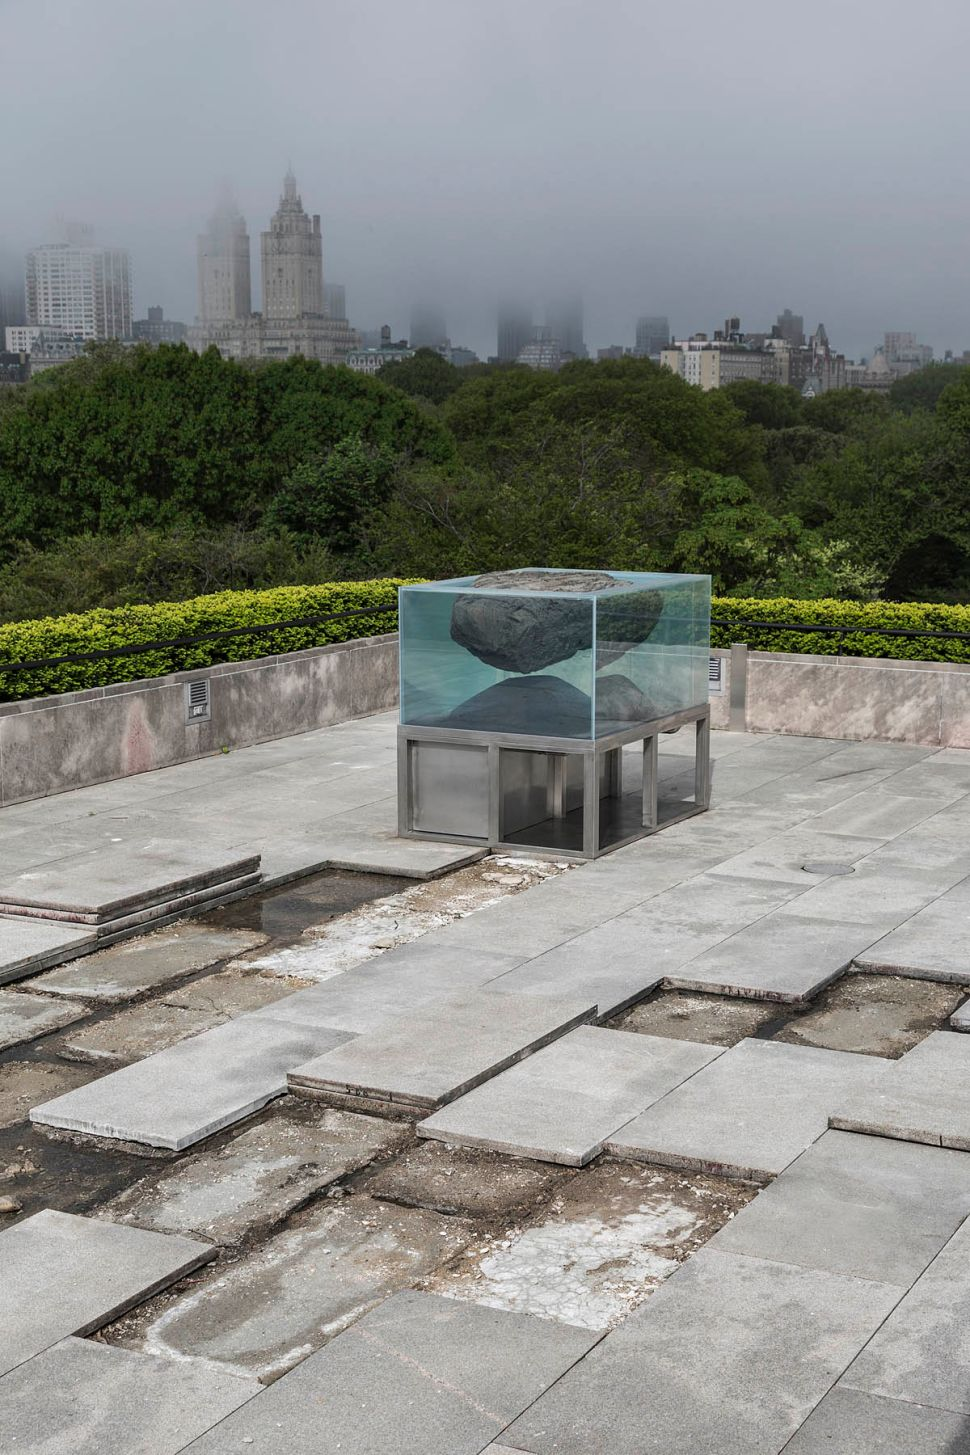 Pierre Huyghe on Why He Chose to Dig Up the Met's Roof Garden